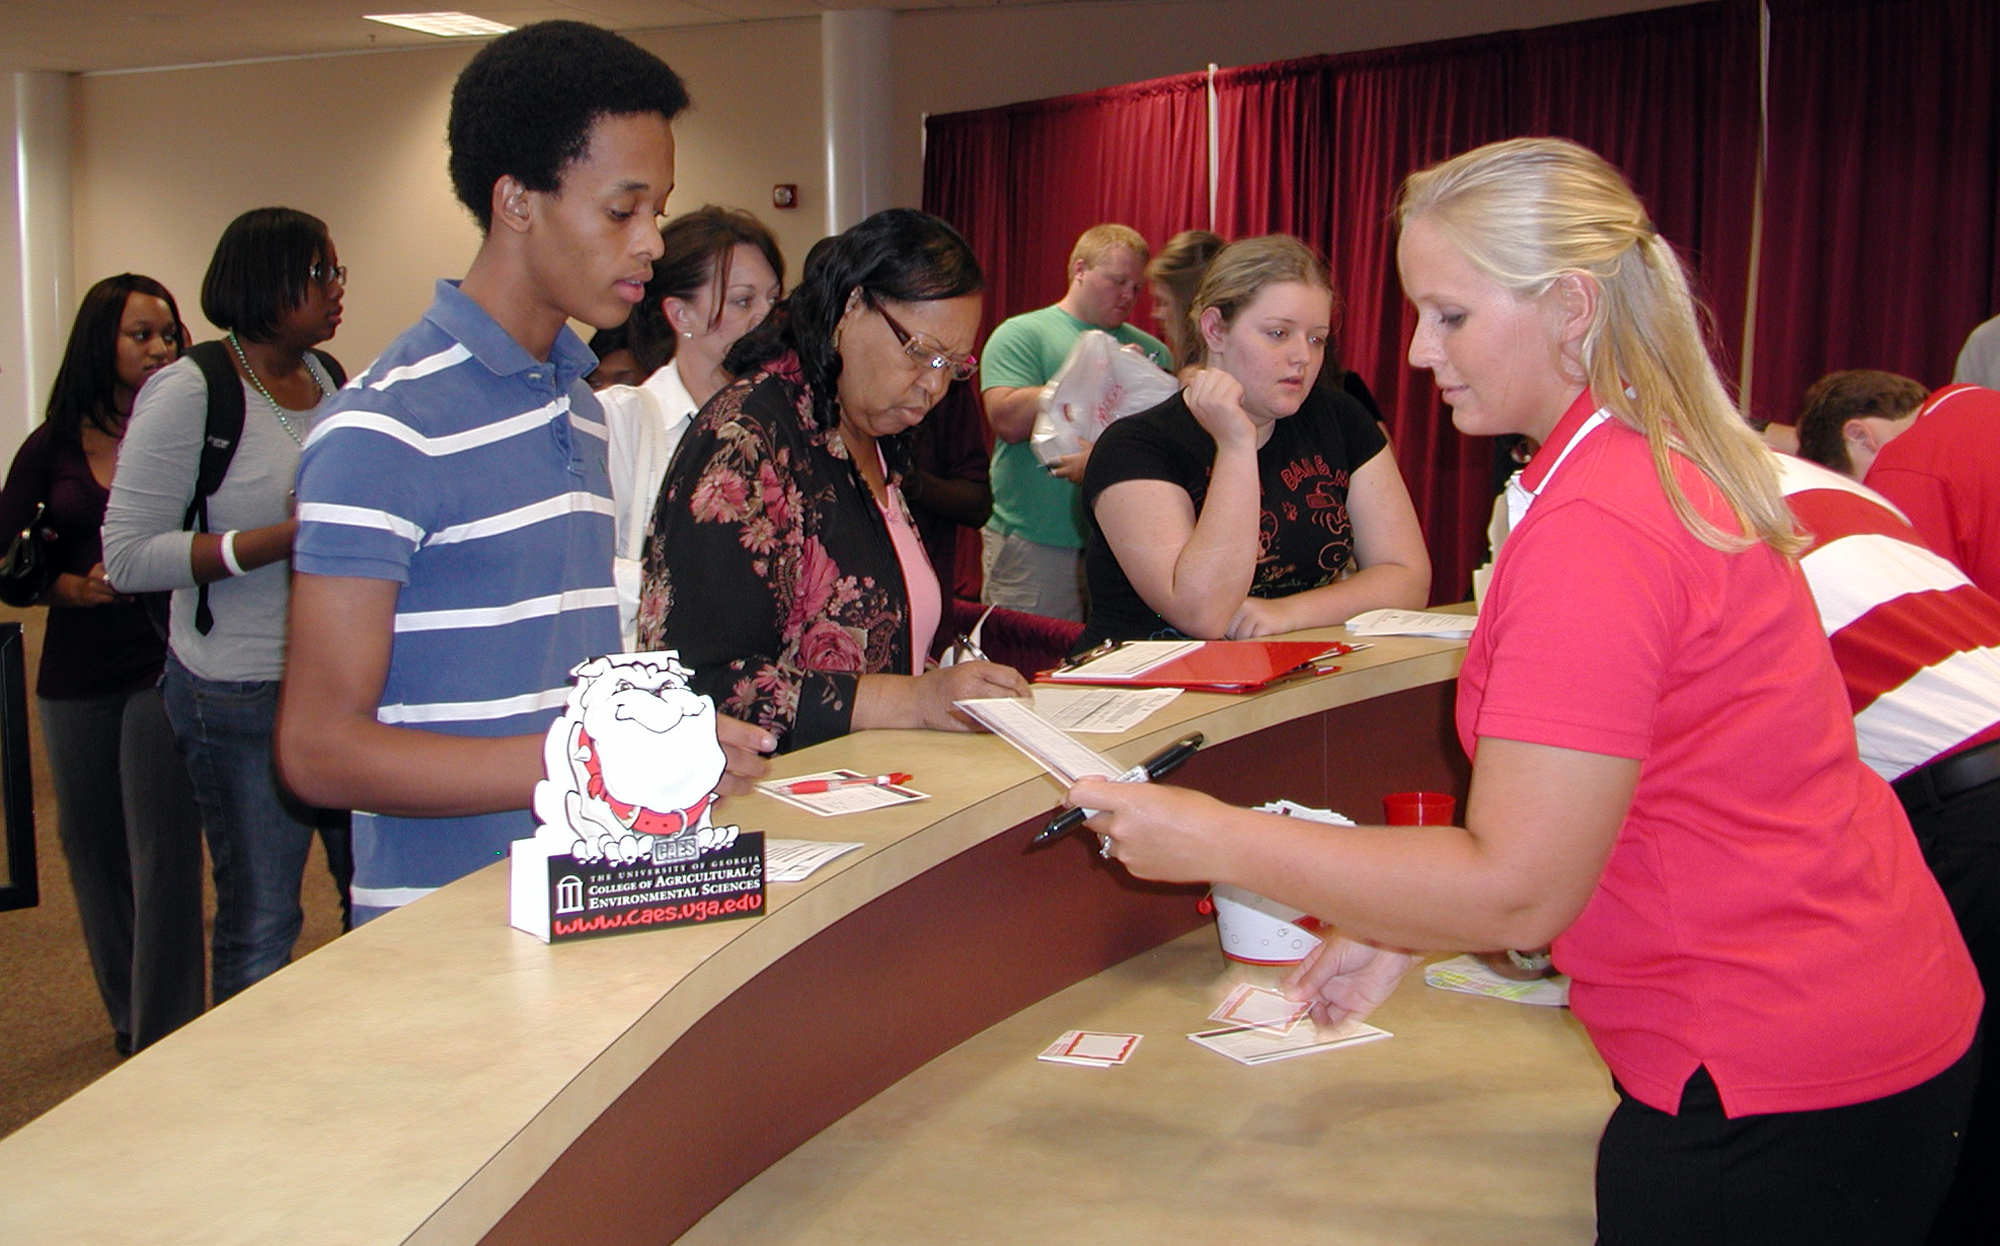 Students register for 2009 UGA Tifton Southwest District Recruitment Event at the UGA Tifton Campus Conference Center.